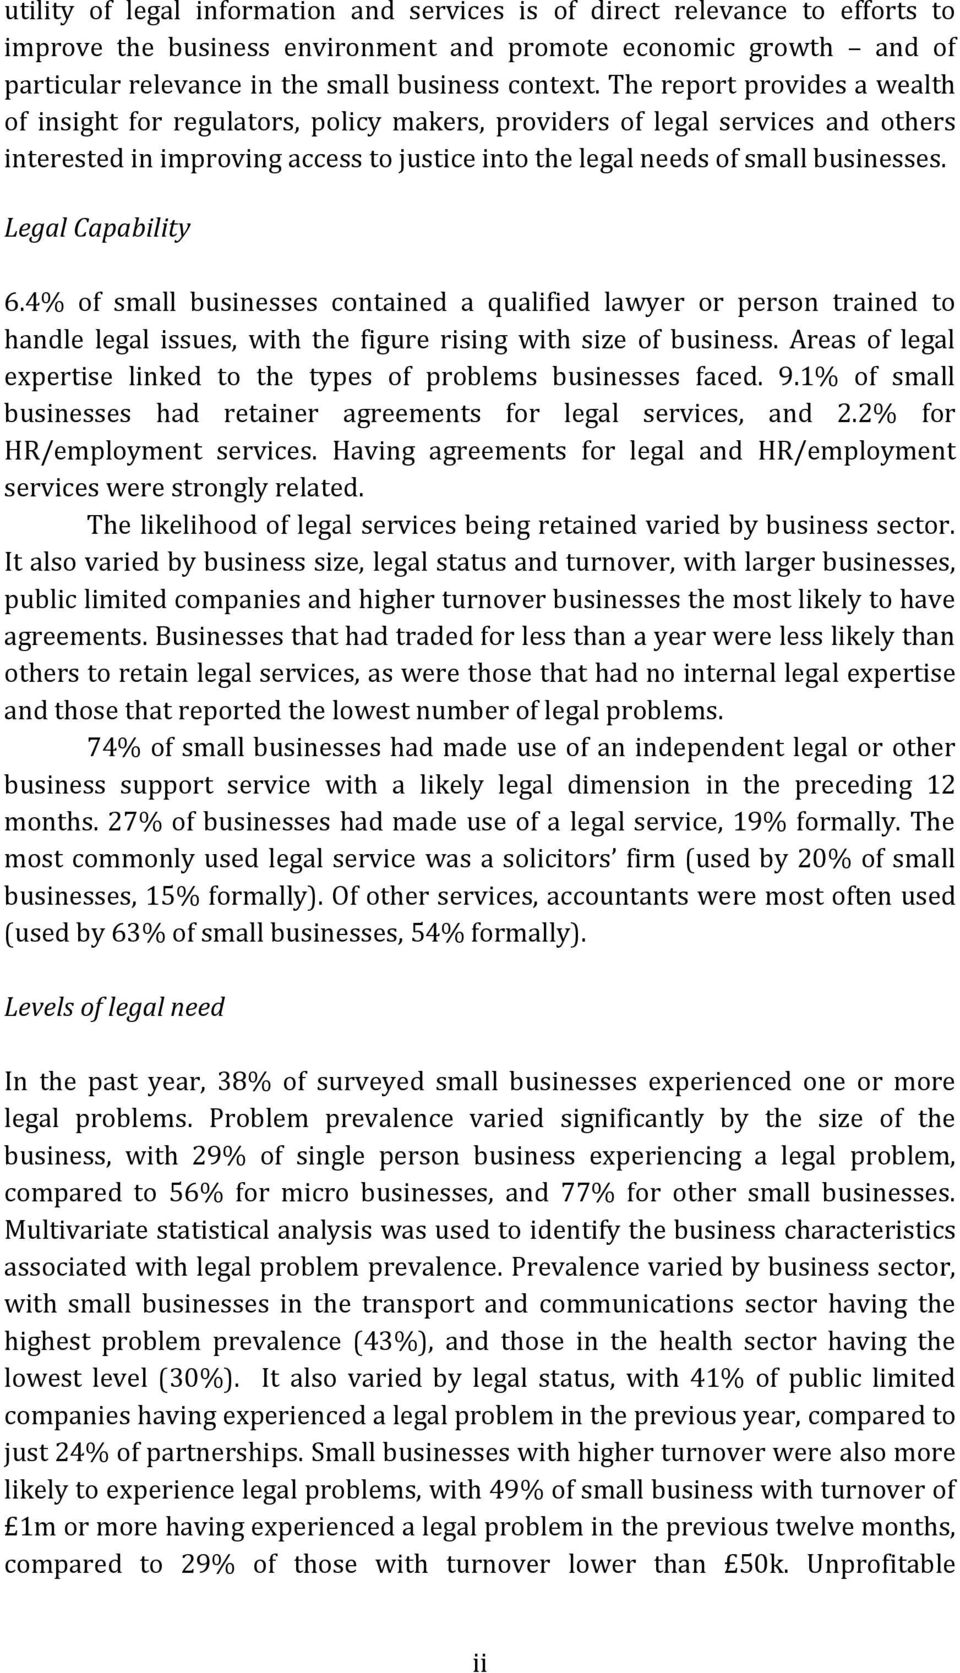 Legal Capability 6.4% of small businesses contained a qualified lawyer or person trained to handle legal issues, with the figure rising with size of business.